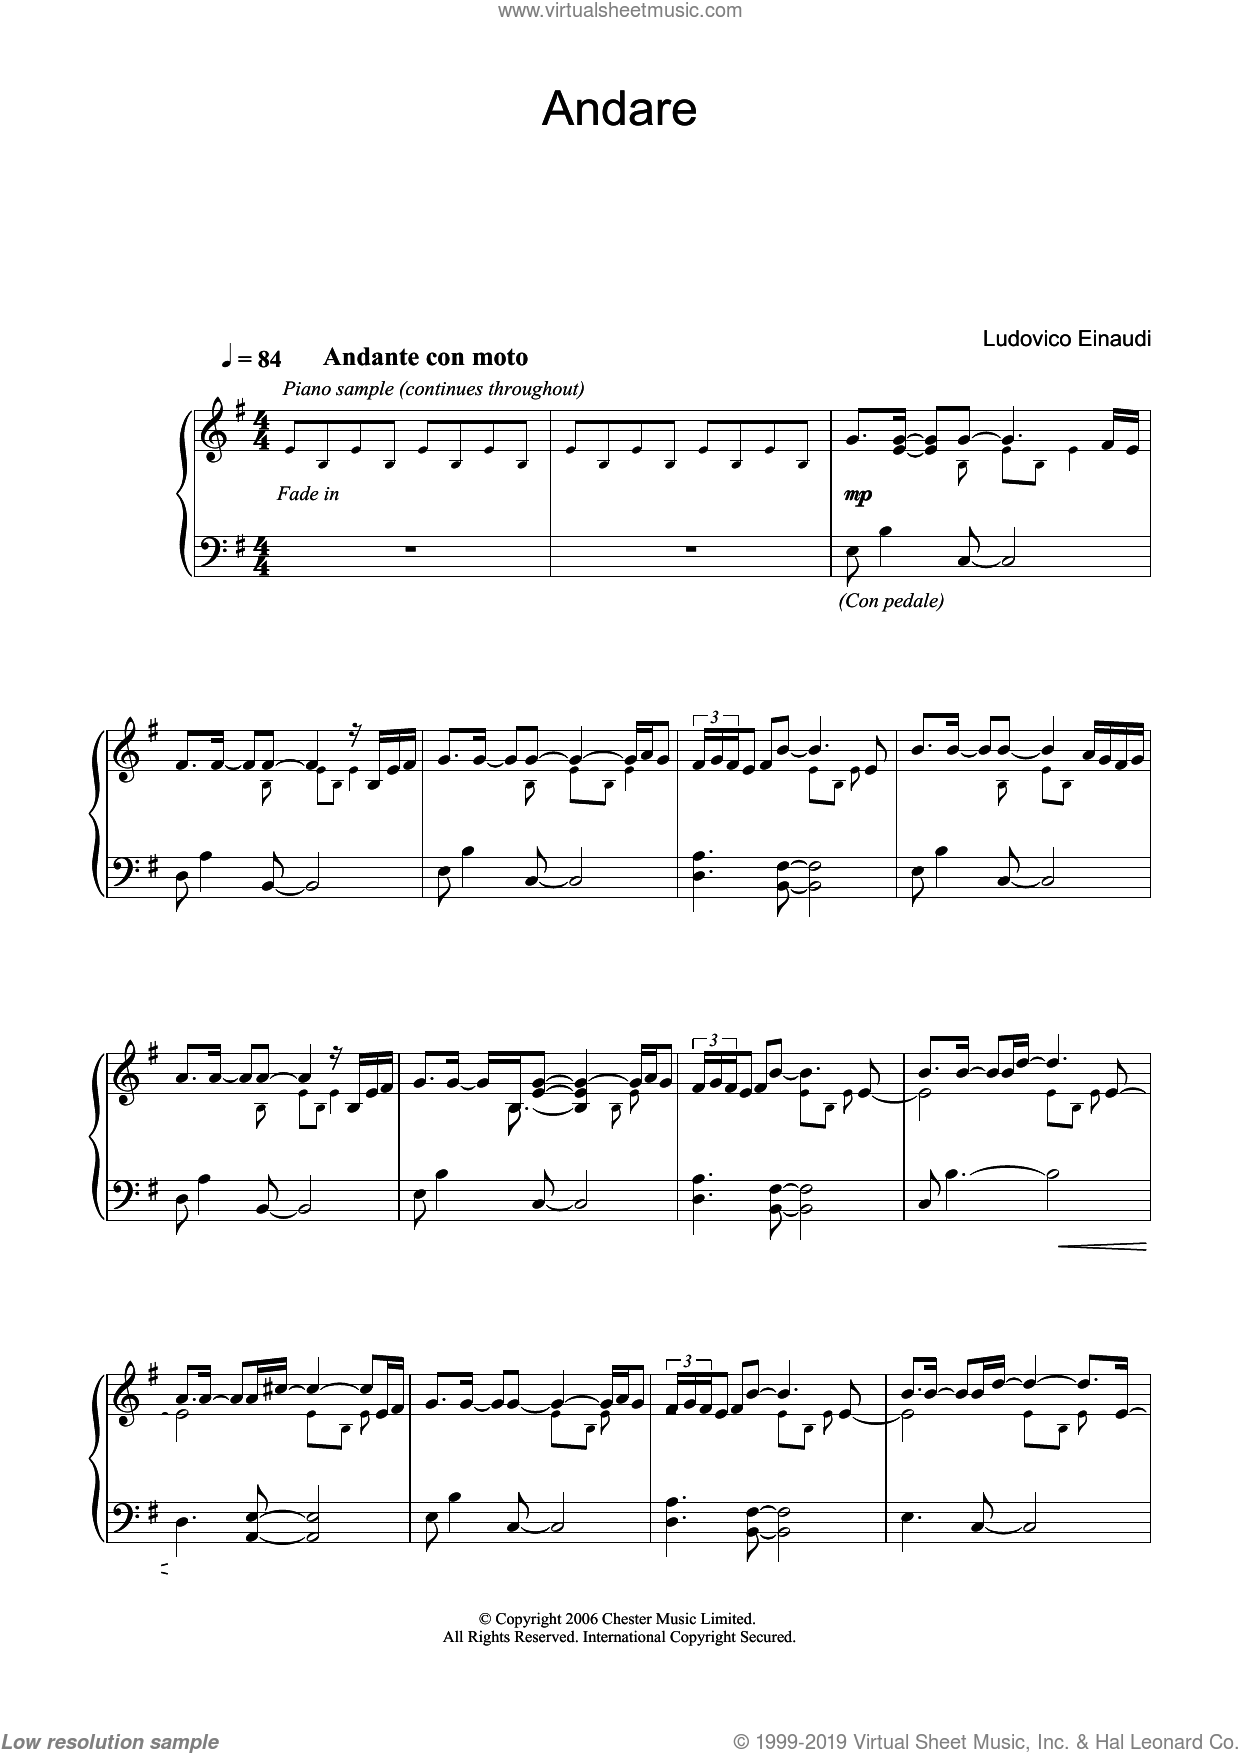 Andare sheet music for piano solo by Ludovico Einaudi, classical score, intermediate skill level